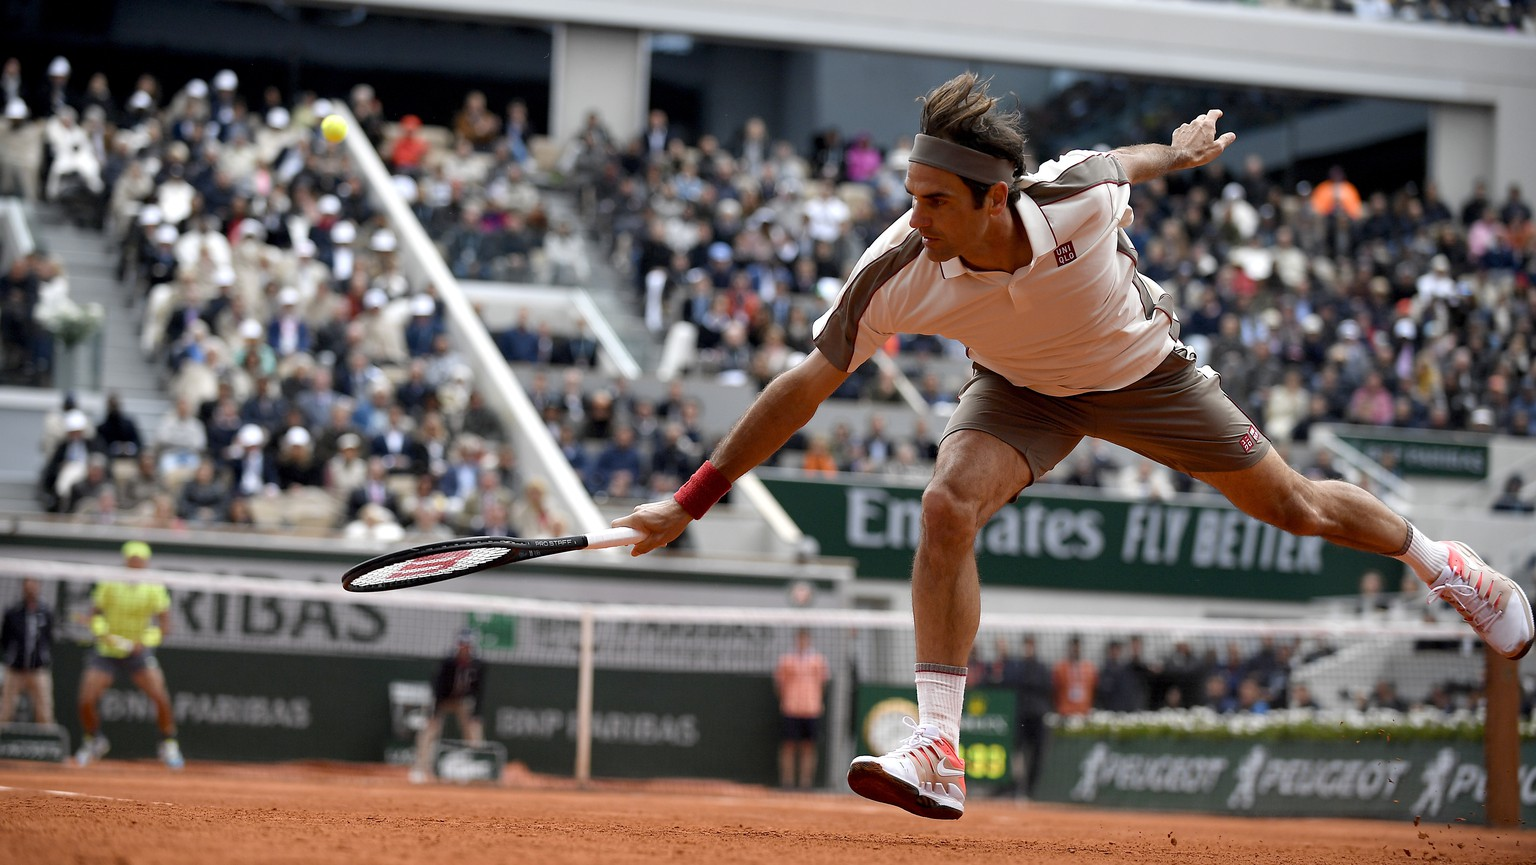 epa07632812 Roger Federer of Switzerland plays Rafael Nadal of Spain during their men's semi final match during the French Open tennis tournament at Roland Garros in Paris, France, 07 June 2019.  EPA/JULIEN DE ROSA